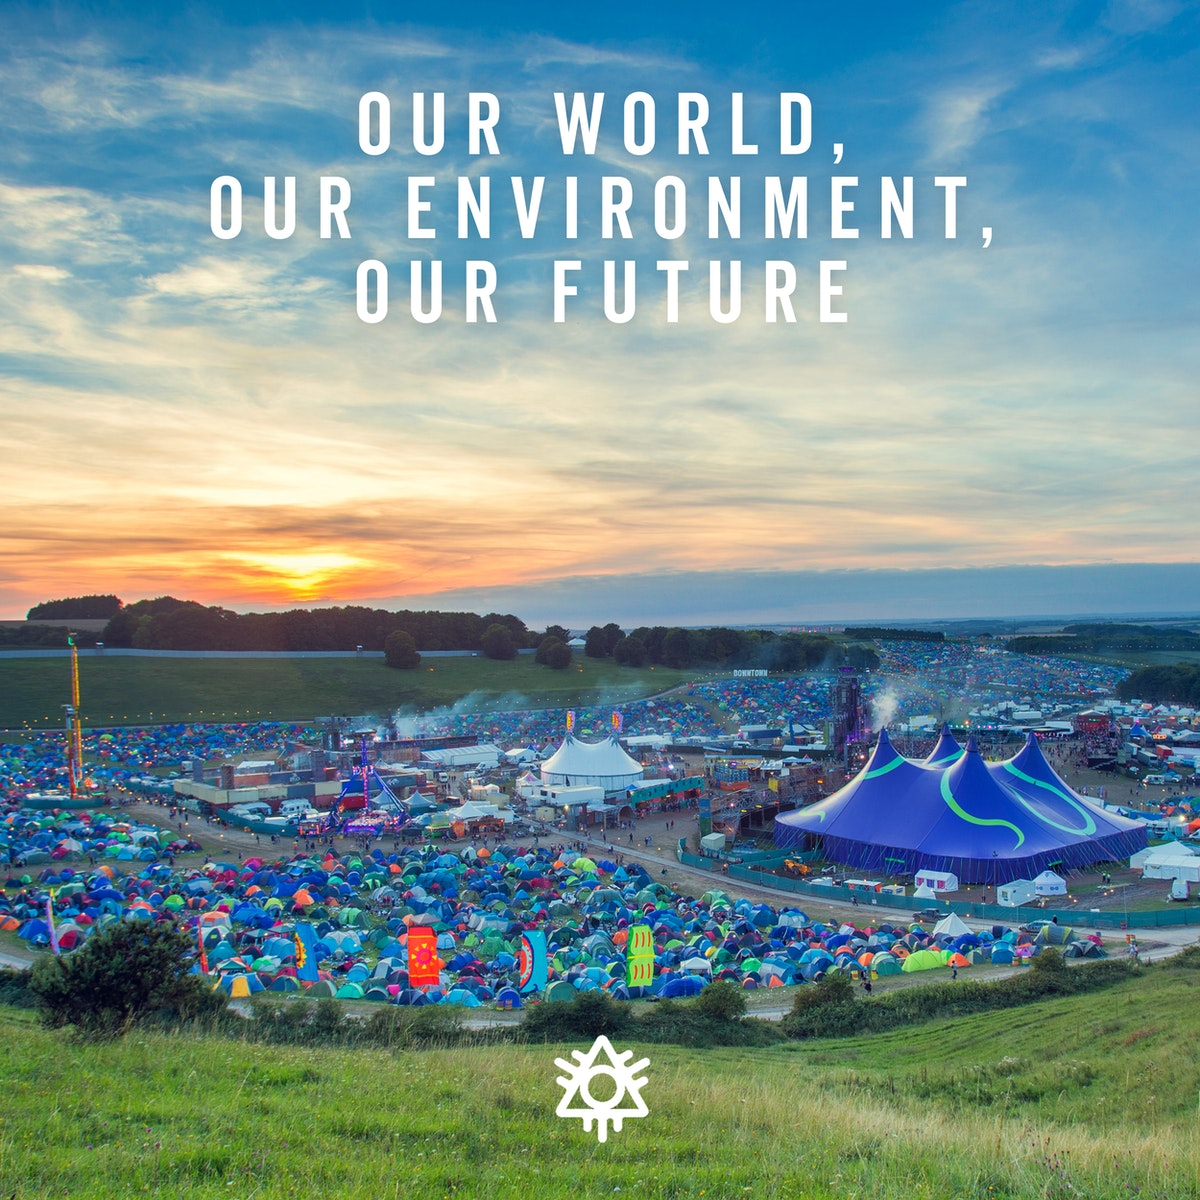 Our World, Our Environment, Our Future